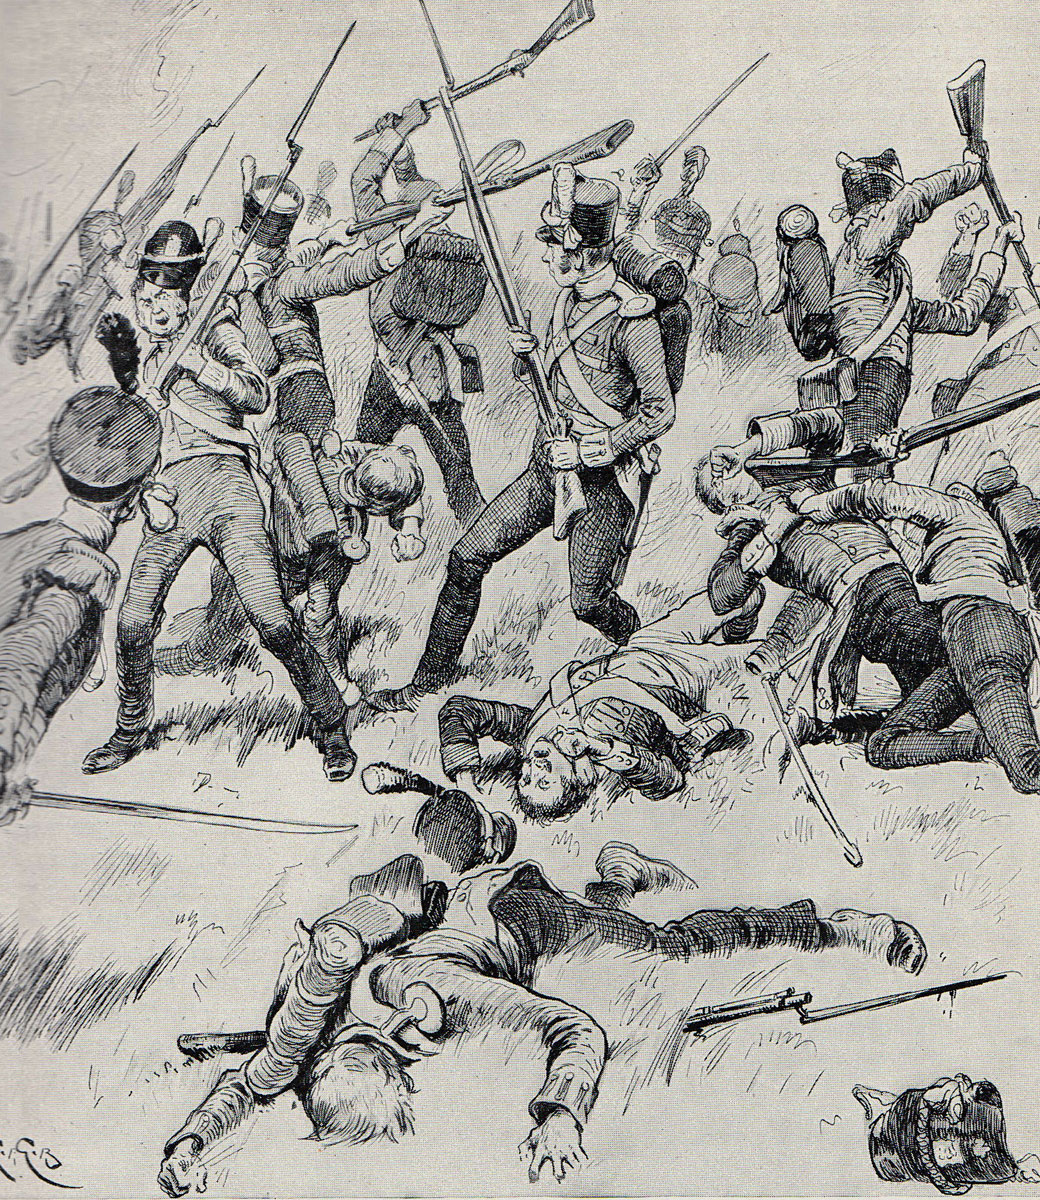 Hand to hand fighting during the Battle of Talavera on 28th July 1809 in the Peninsular War: picture by Gordon Browne